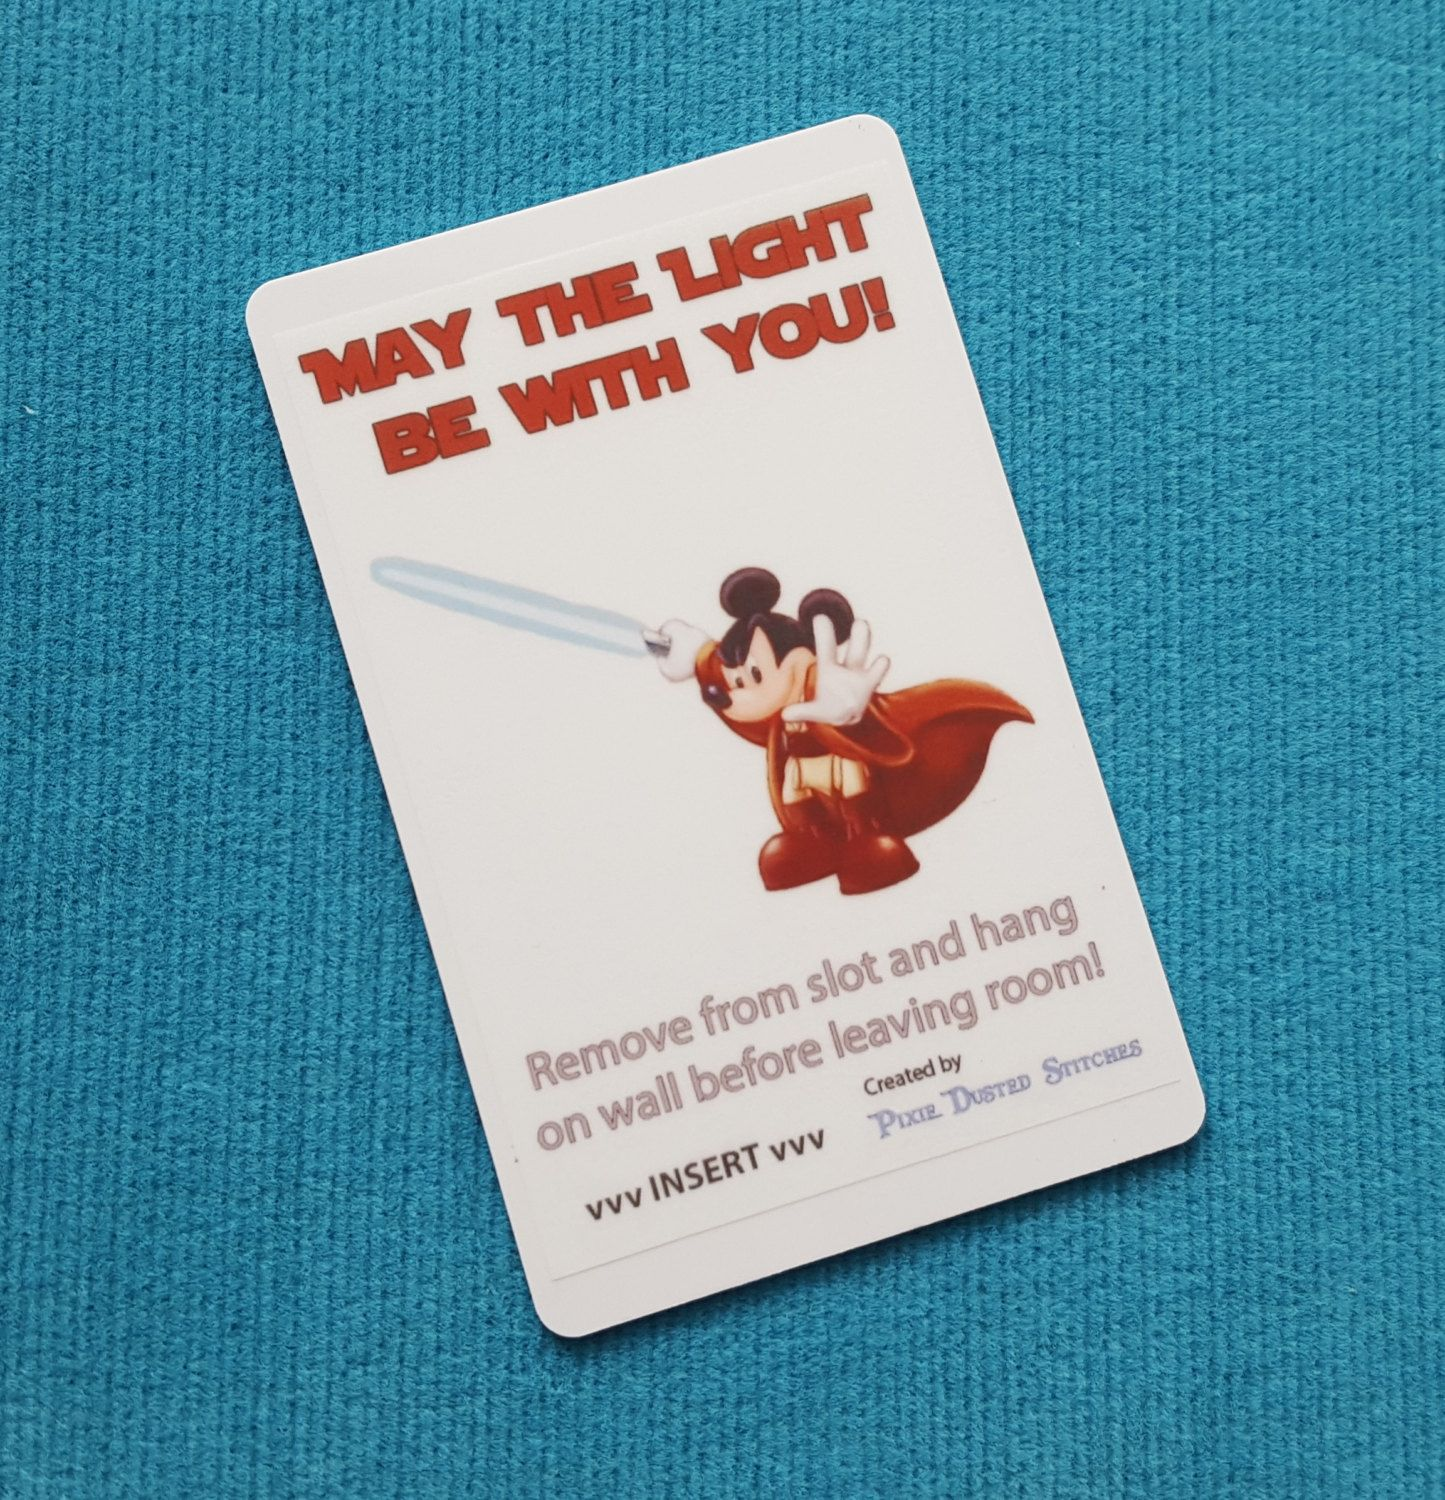 Mickey May the Light be With You Disney Cruise Light Card for Fish ...